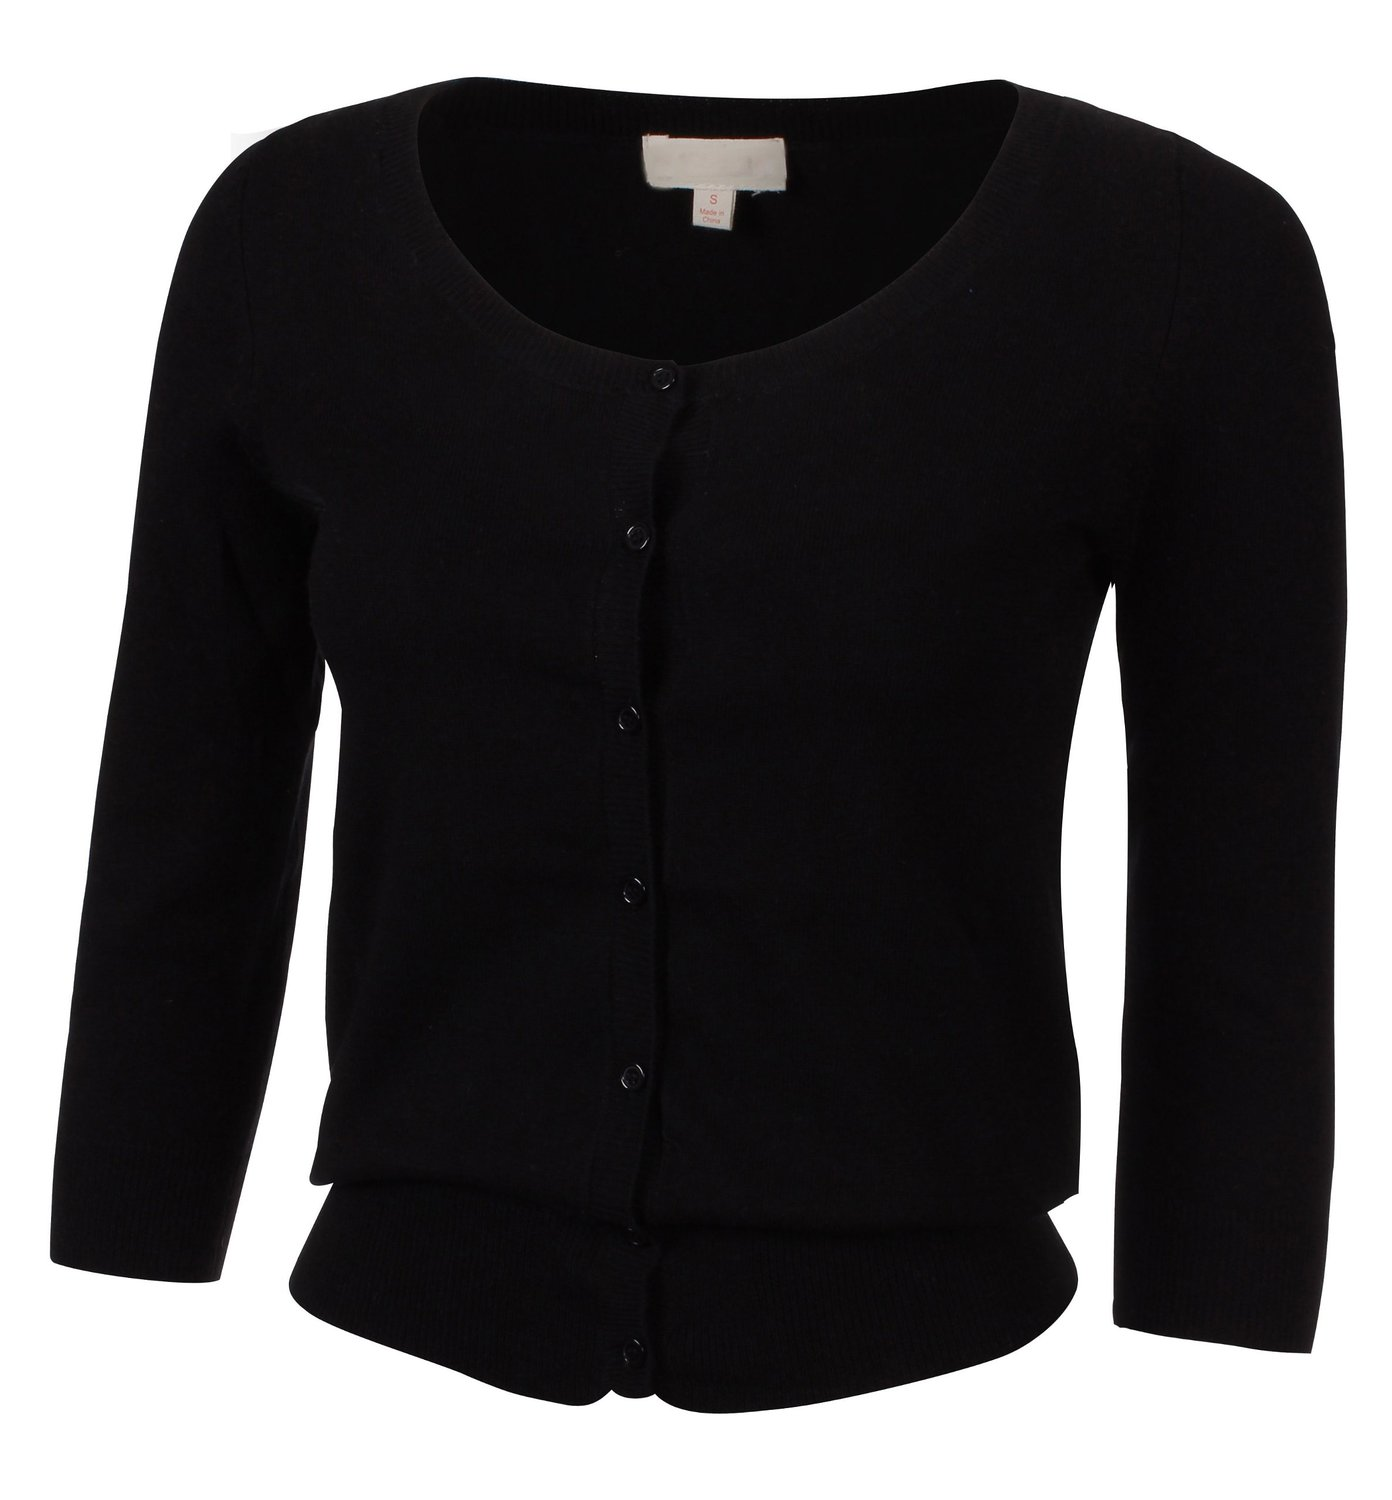 Made By Johnny Women's 3/4 Sleeve Classic Prep Cardigan at Amazon Women's Clothing store: